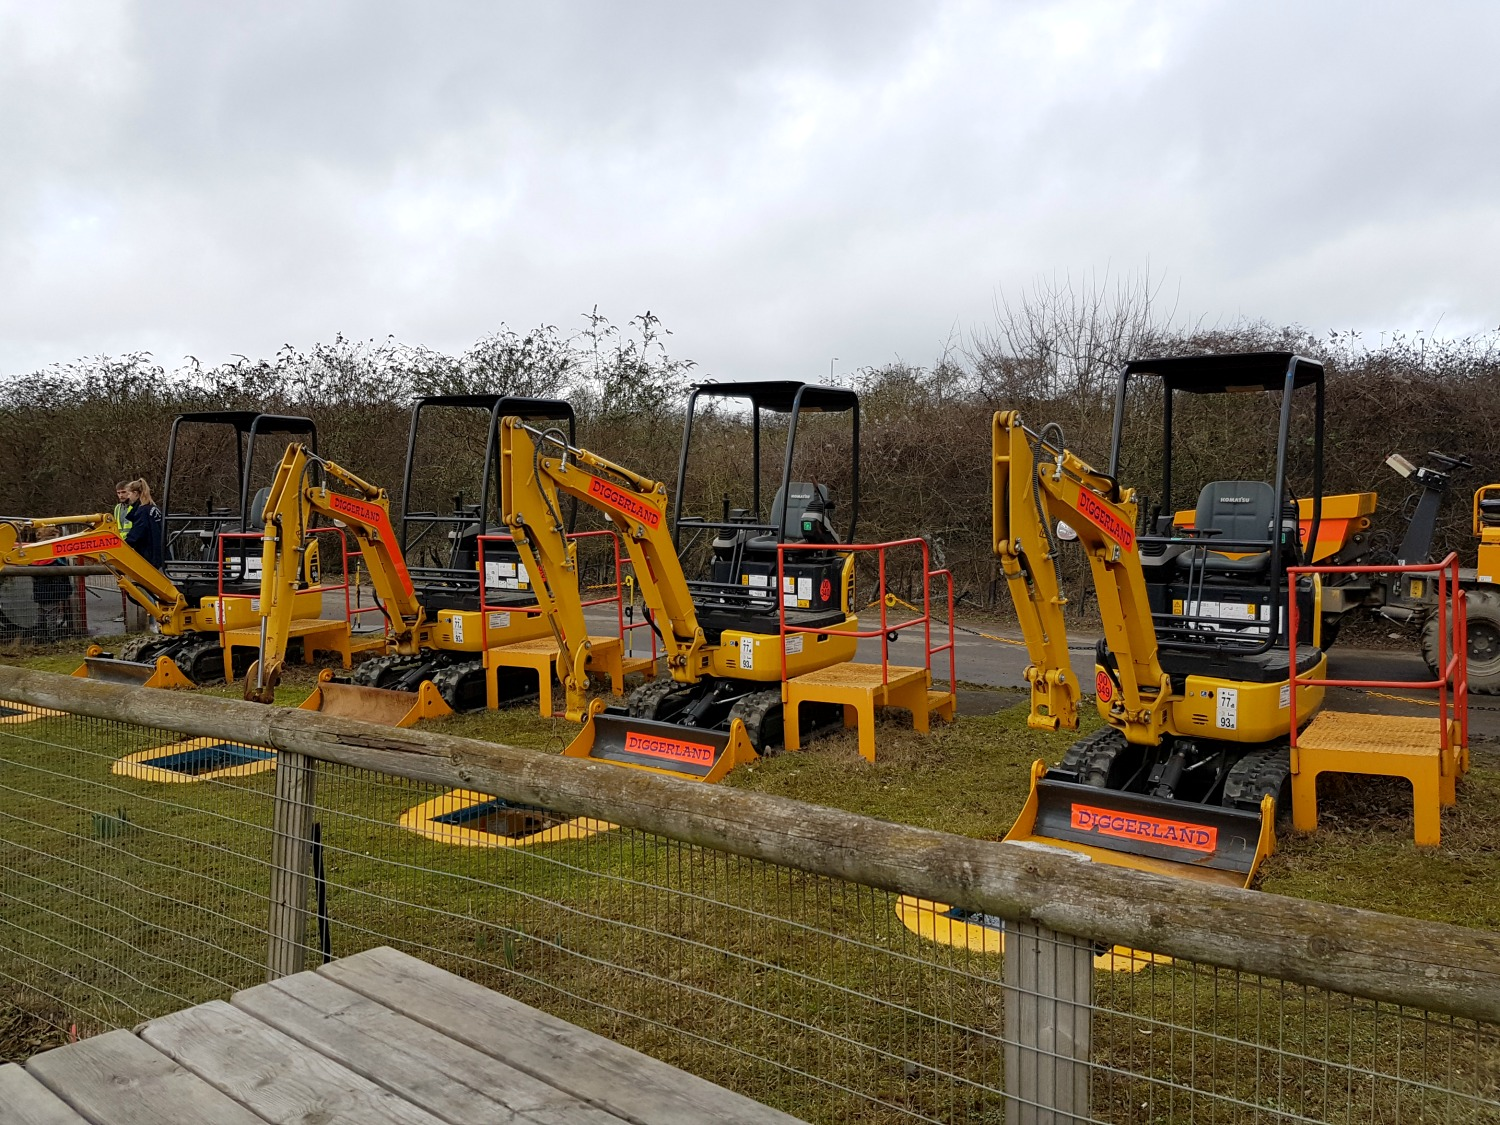 A line of diggers at Diggerland Kent - one of the attractions on this family day out